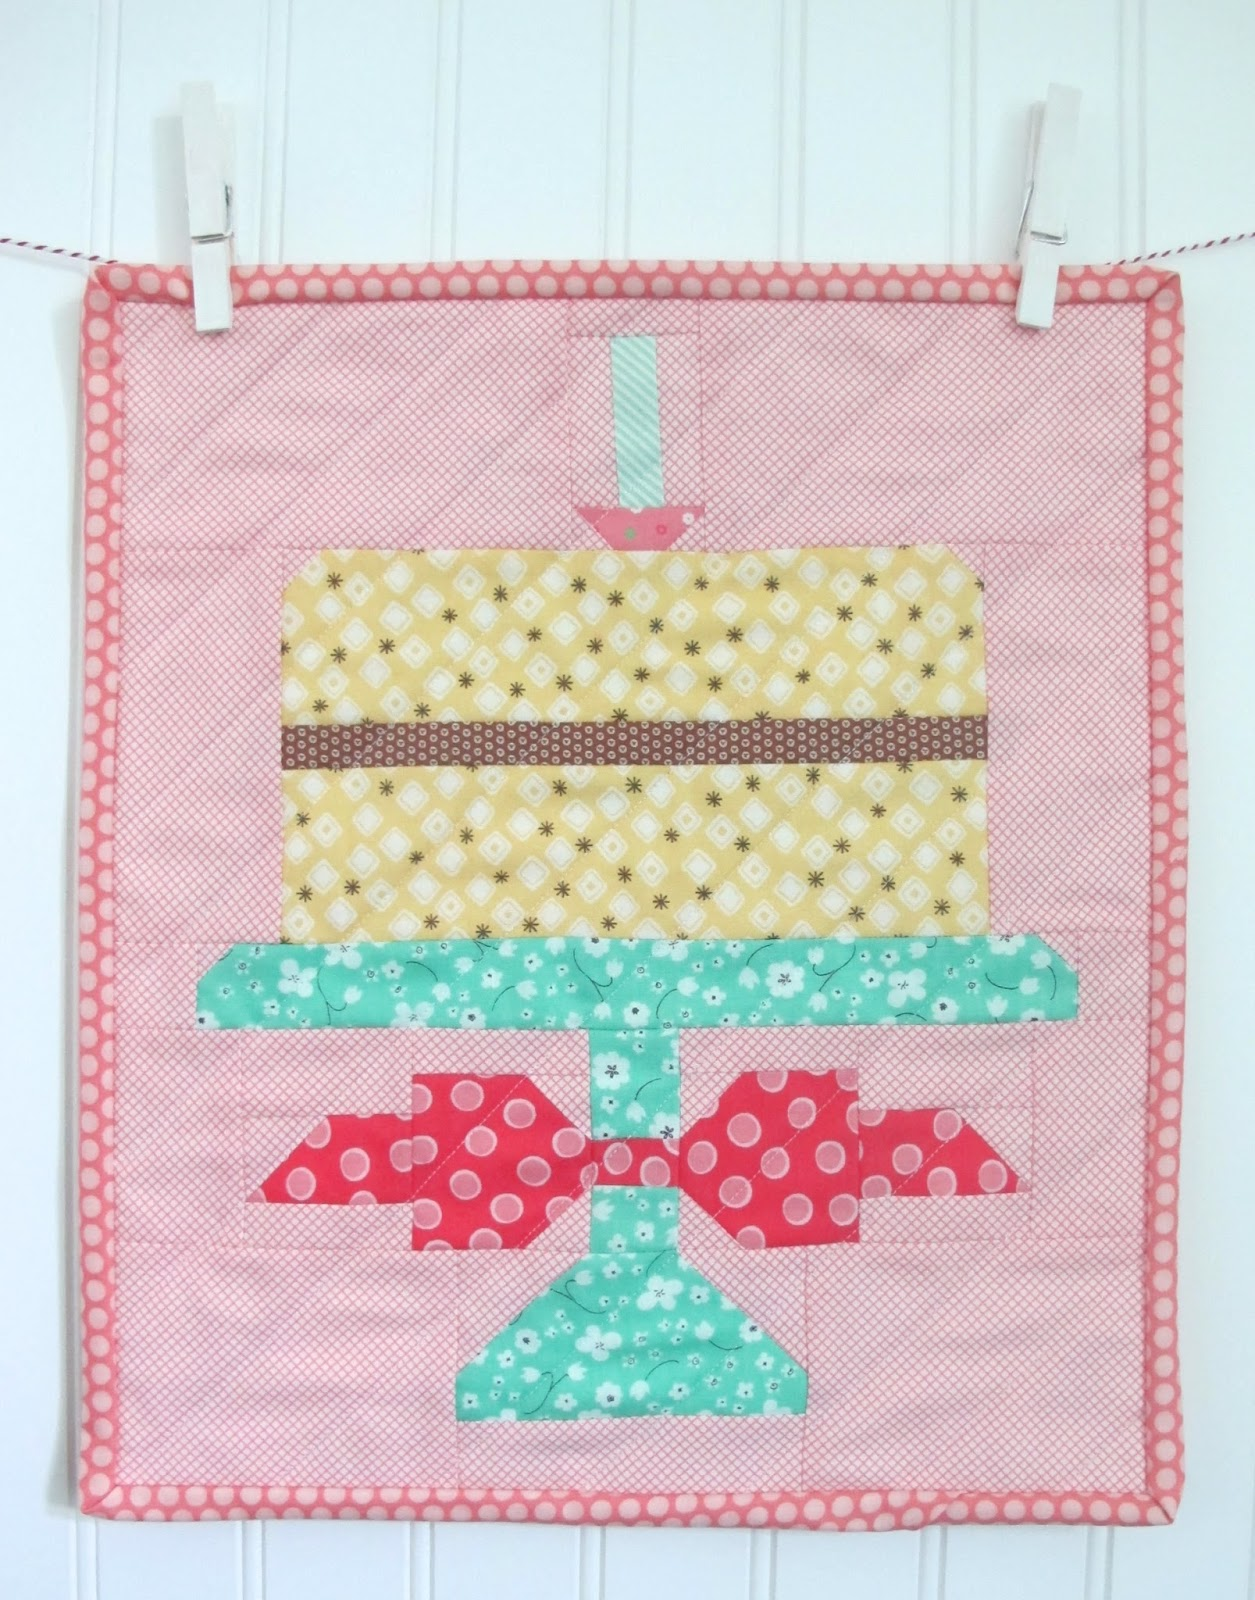 Quilty Fun Is Having A Birthday Party And Youre InvitedFree Cake Pattern From Me To You